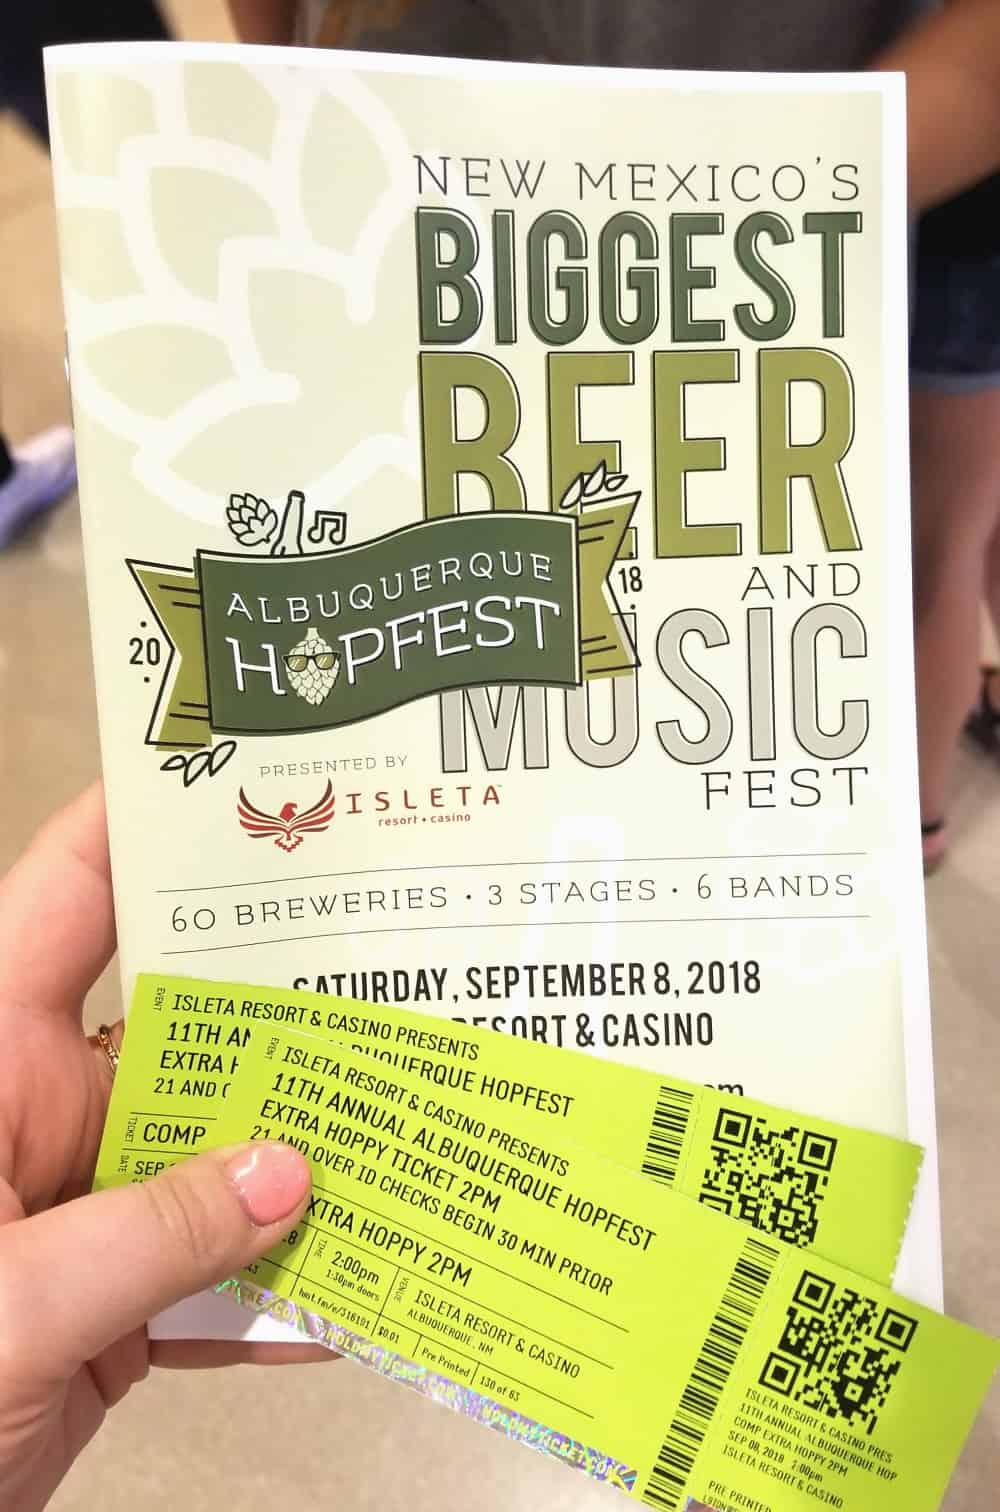 Albuquerque Hopfest Beer Festival in New Mexico